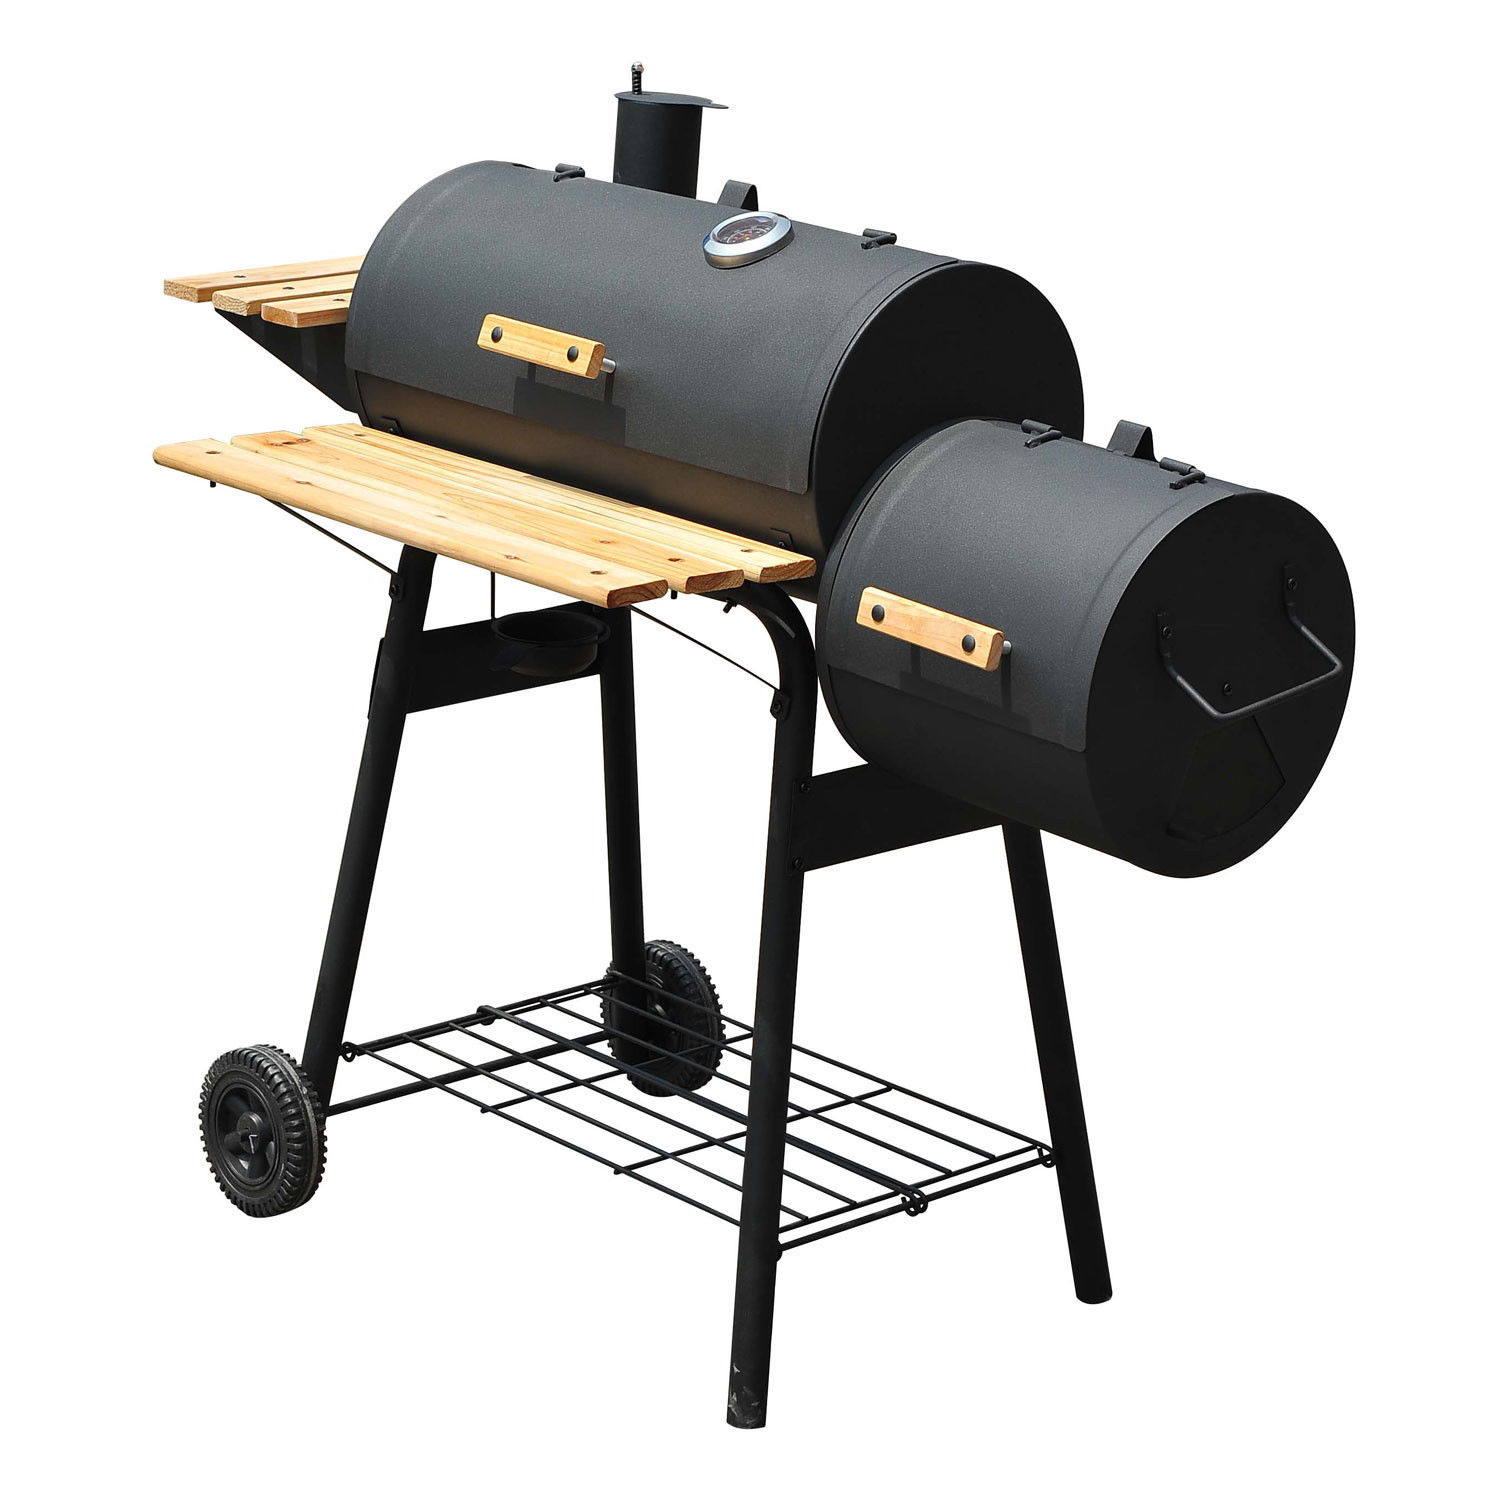 Charcoal Barbecue Grill Patio Smoker 1